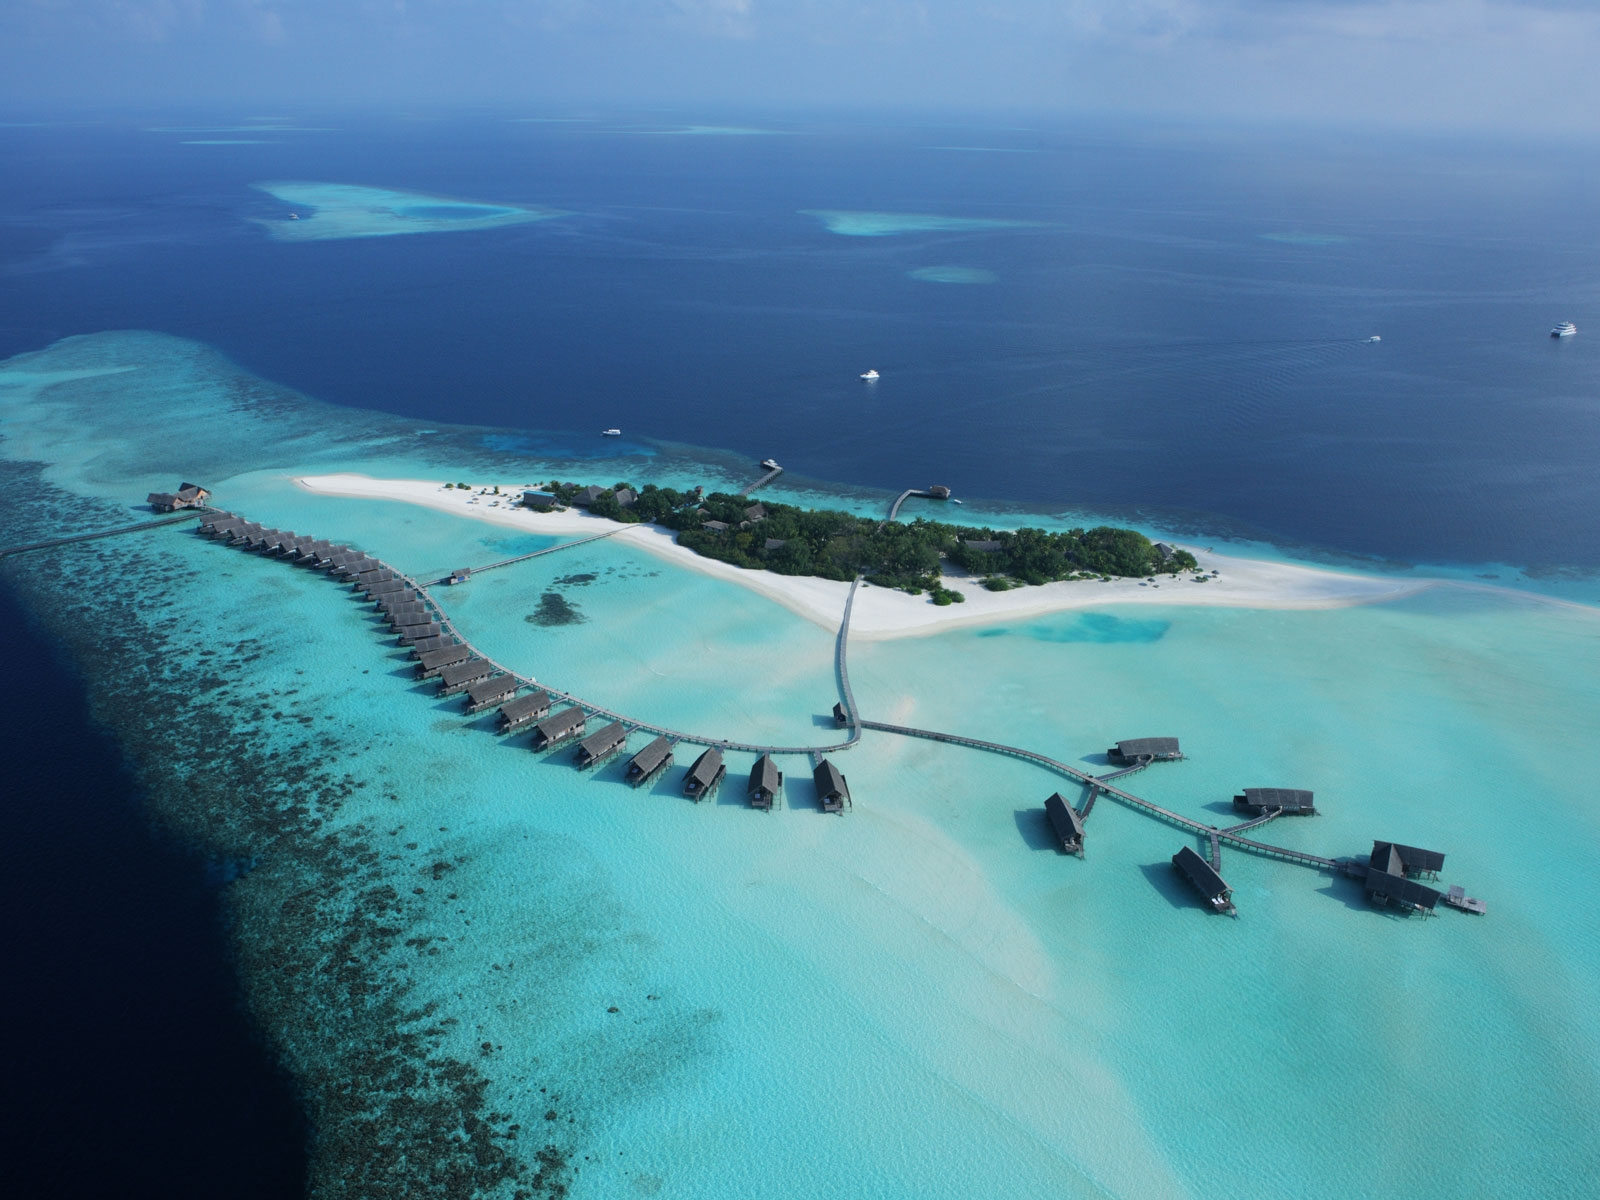 13. Cocoa Island Resort, Maldives